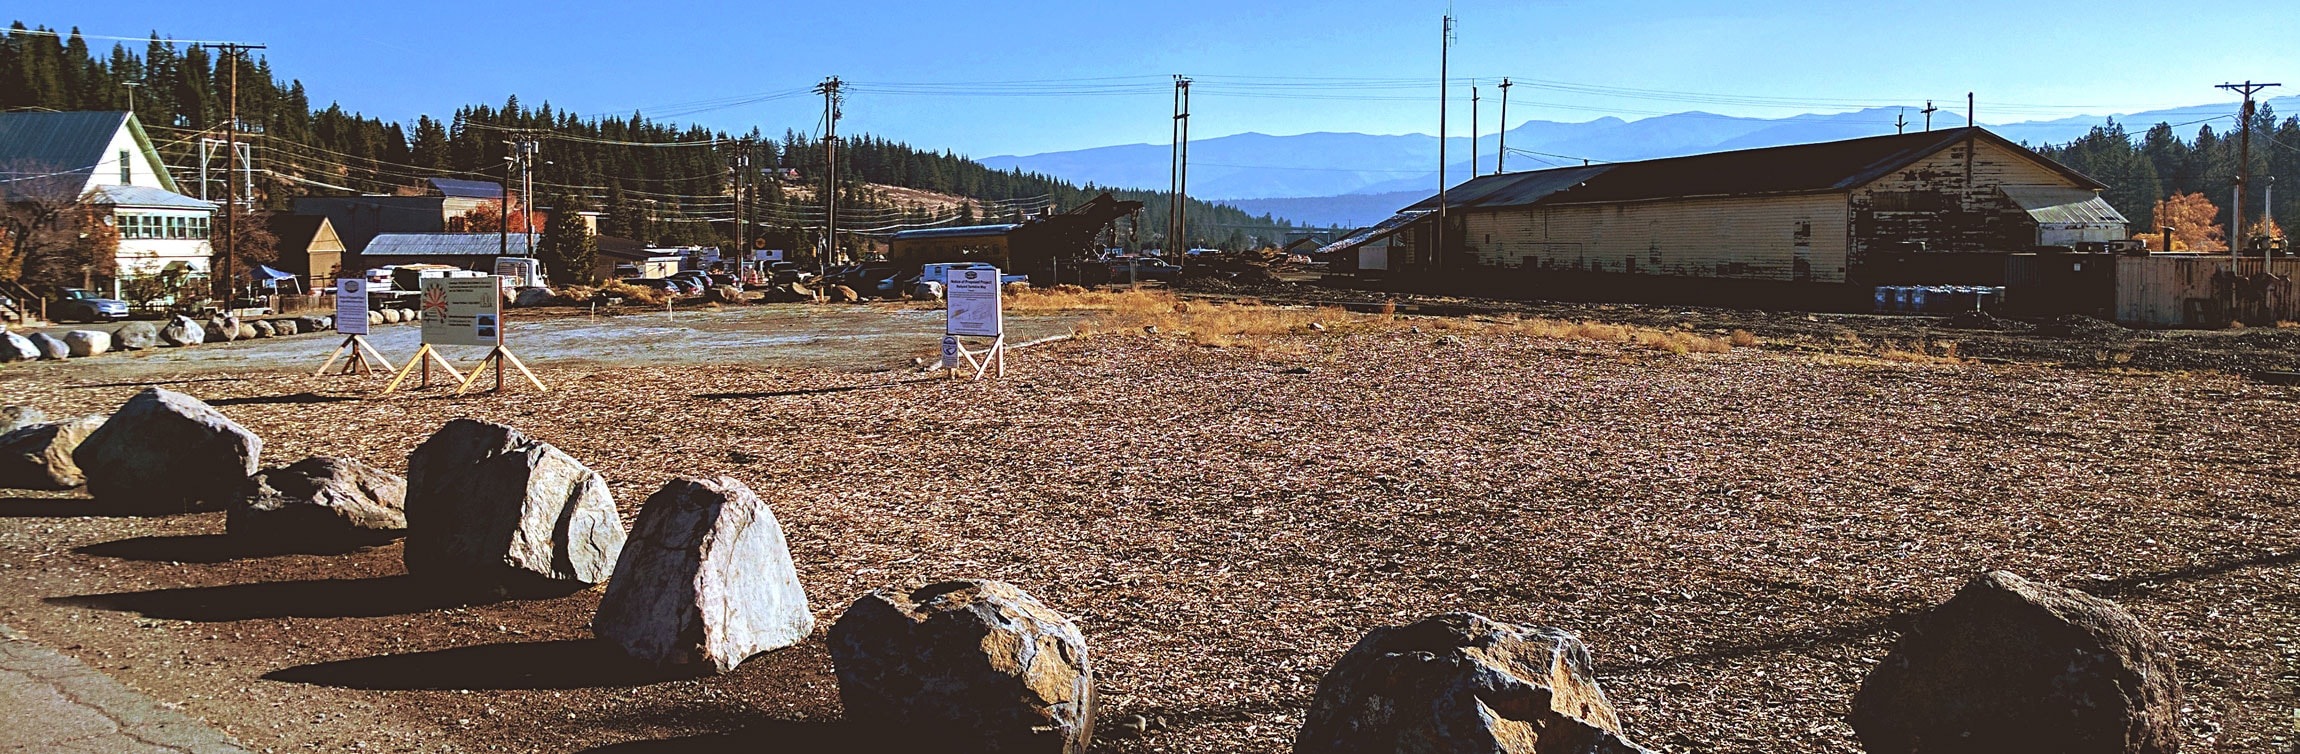 downtown_truckee_railyard_tahoe_boundary_resolution_base_mapping_right_of_way_delineation_easement_title_research_eastern_sierra_engineering_holiday_development_survey_project_sage_land_surveying